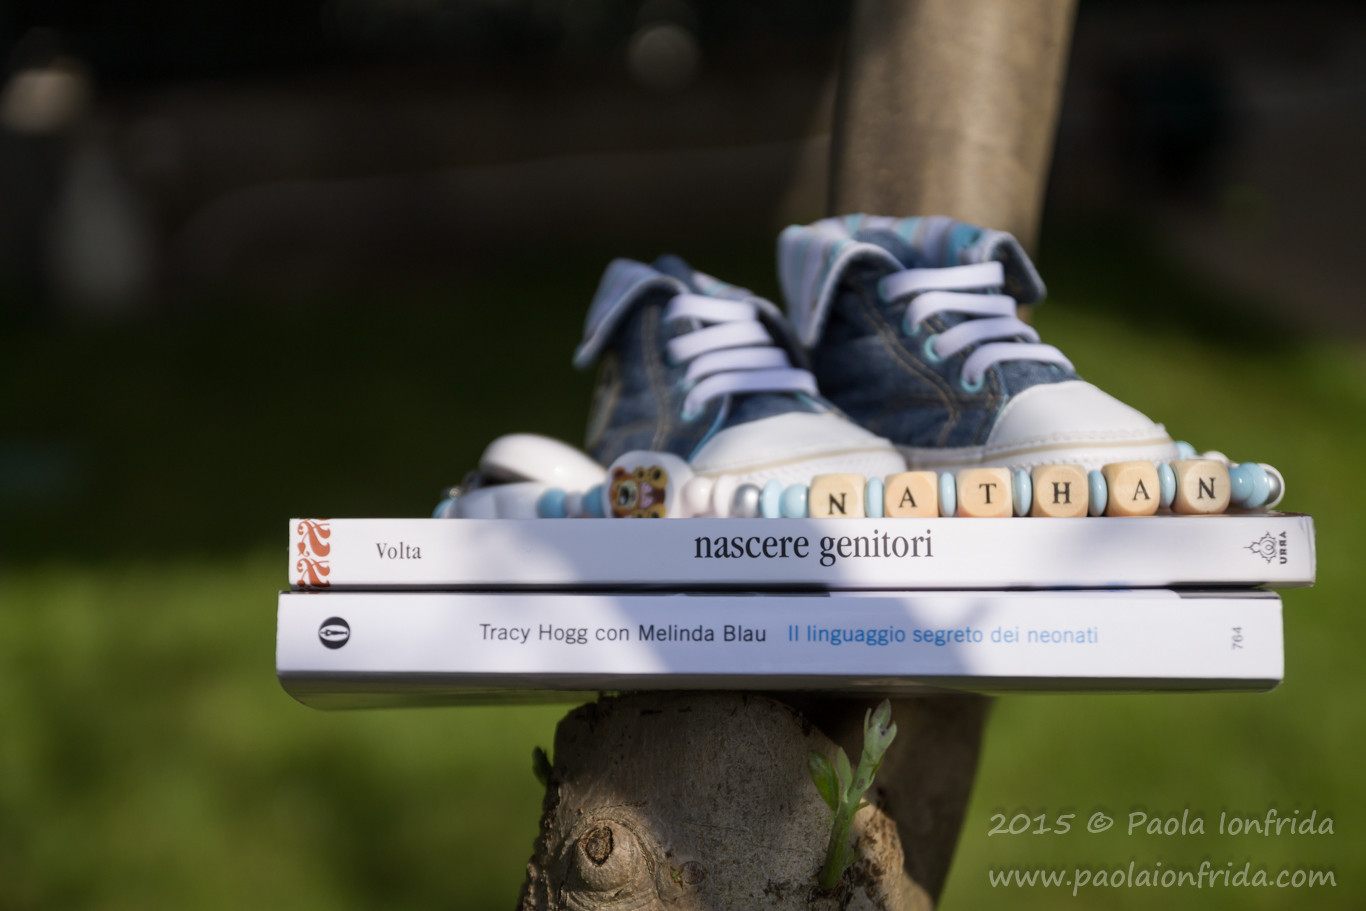 Book & shoes on tree